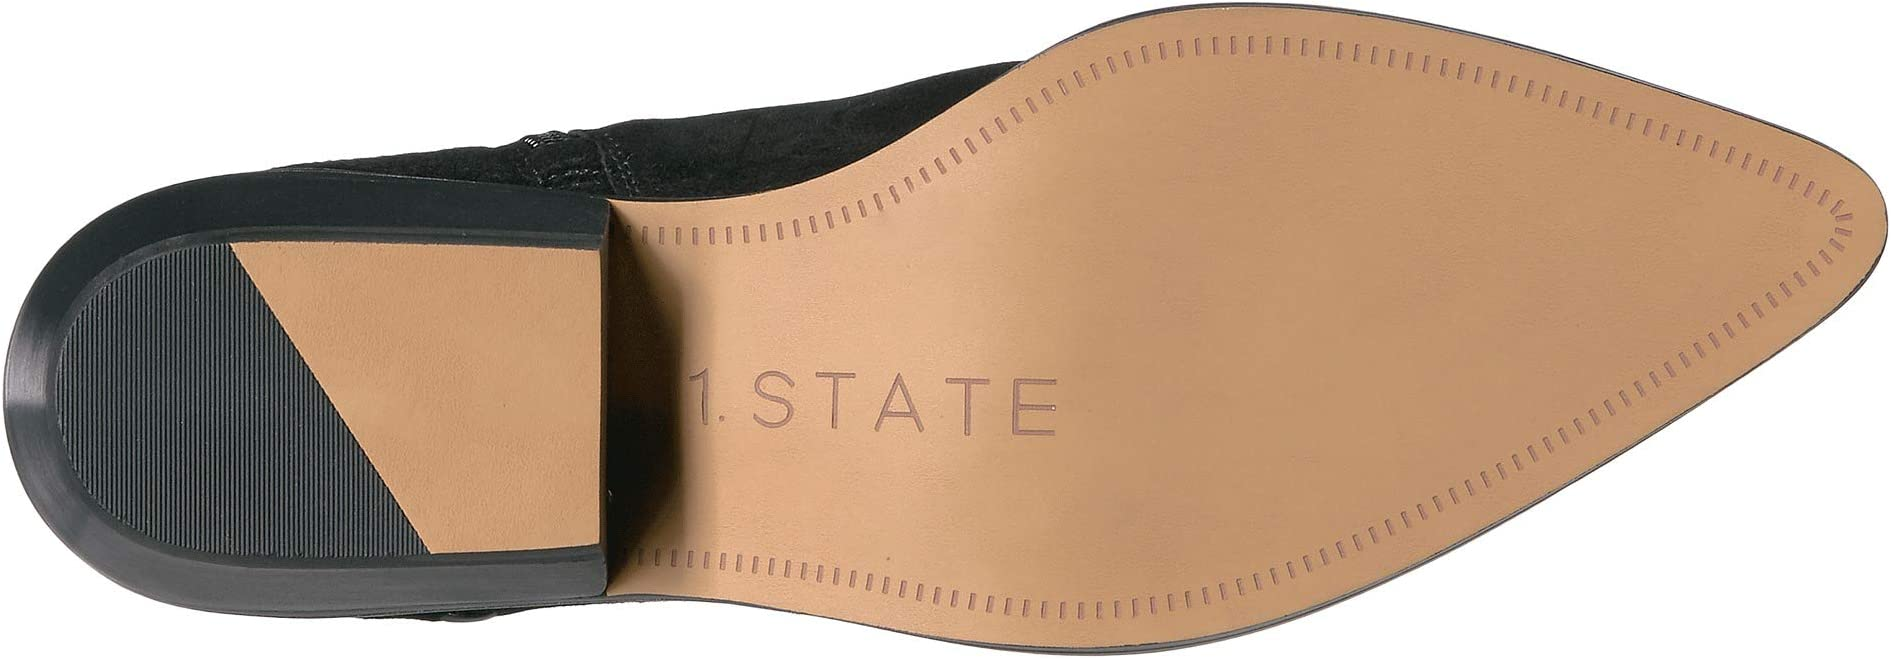 1.STATE Sage | Women's shoes | 2020 Newest